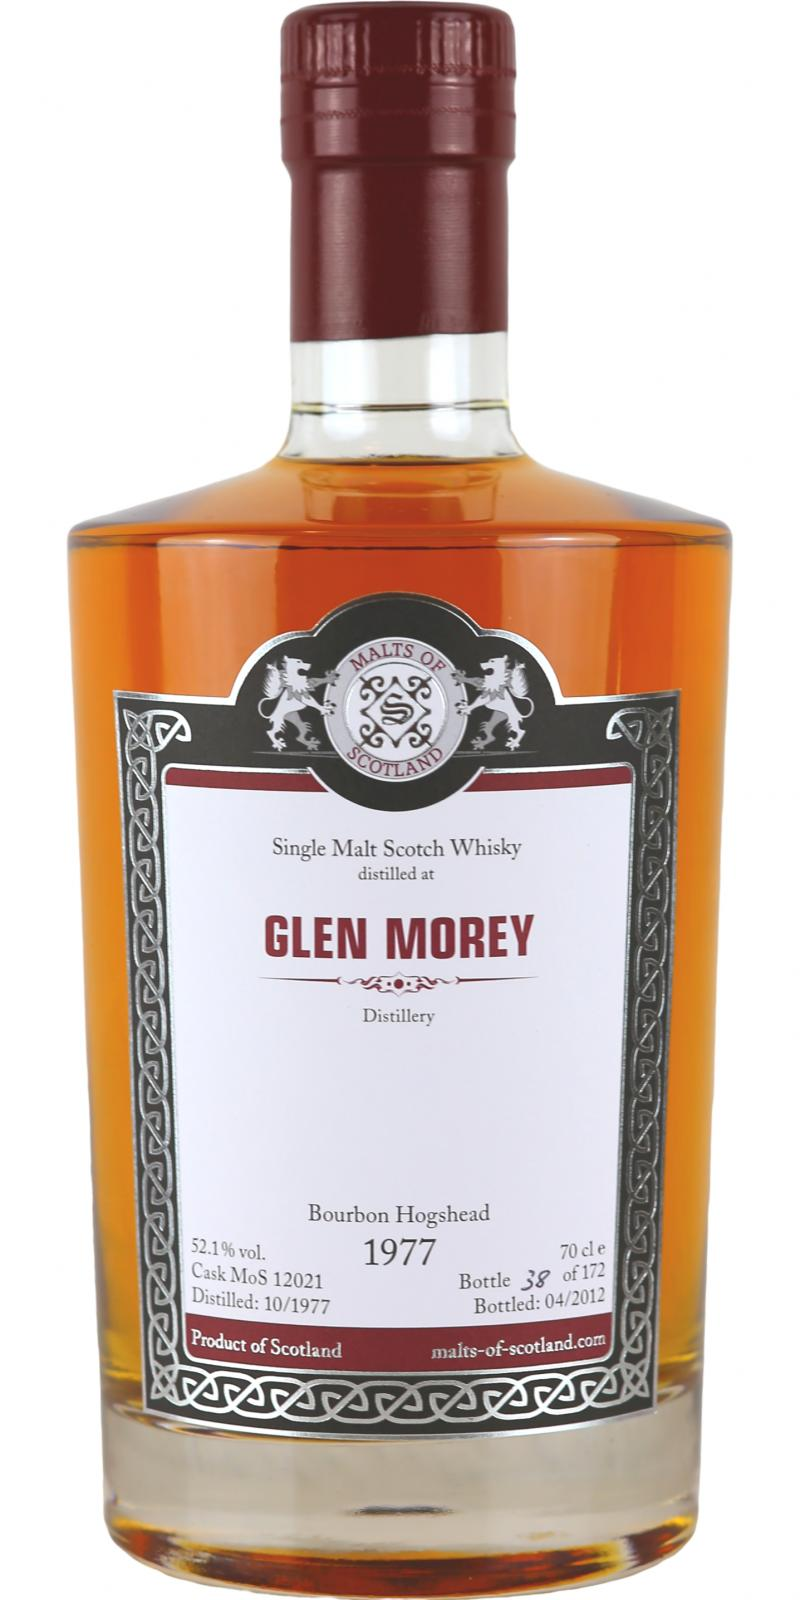 Glen Moray 1977 MoS